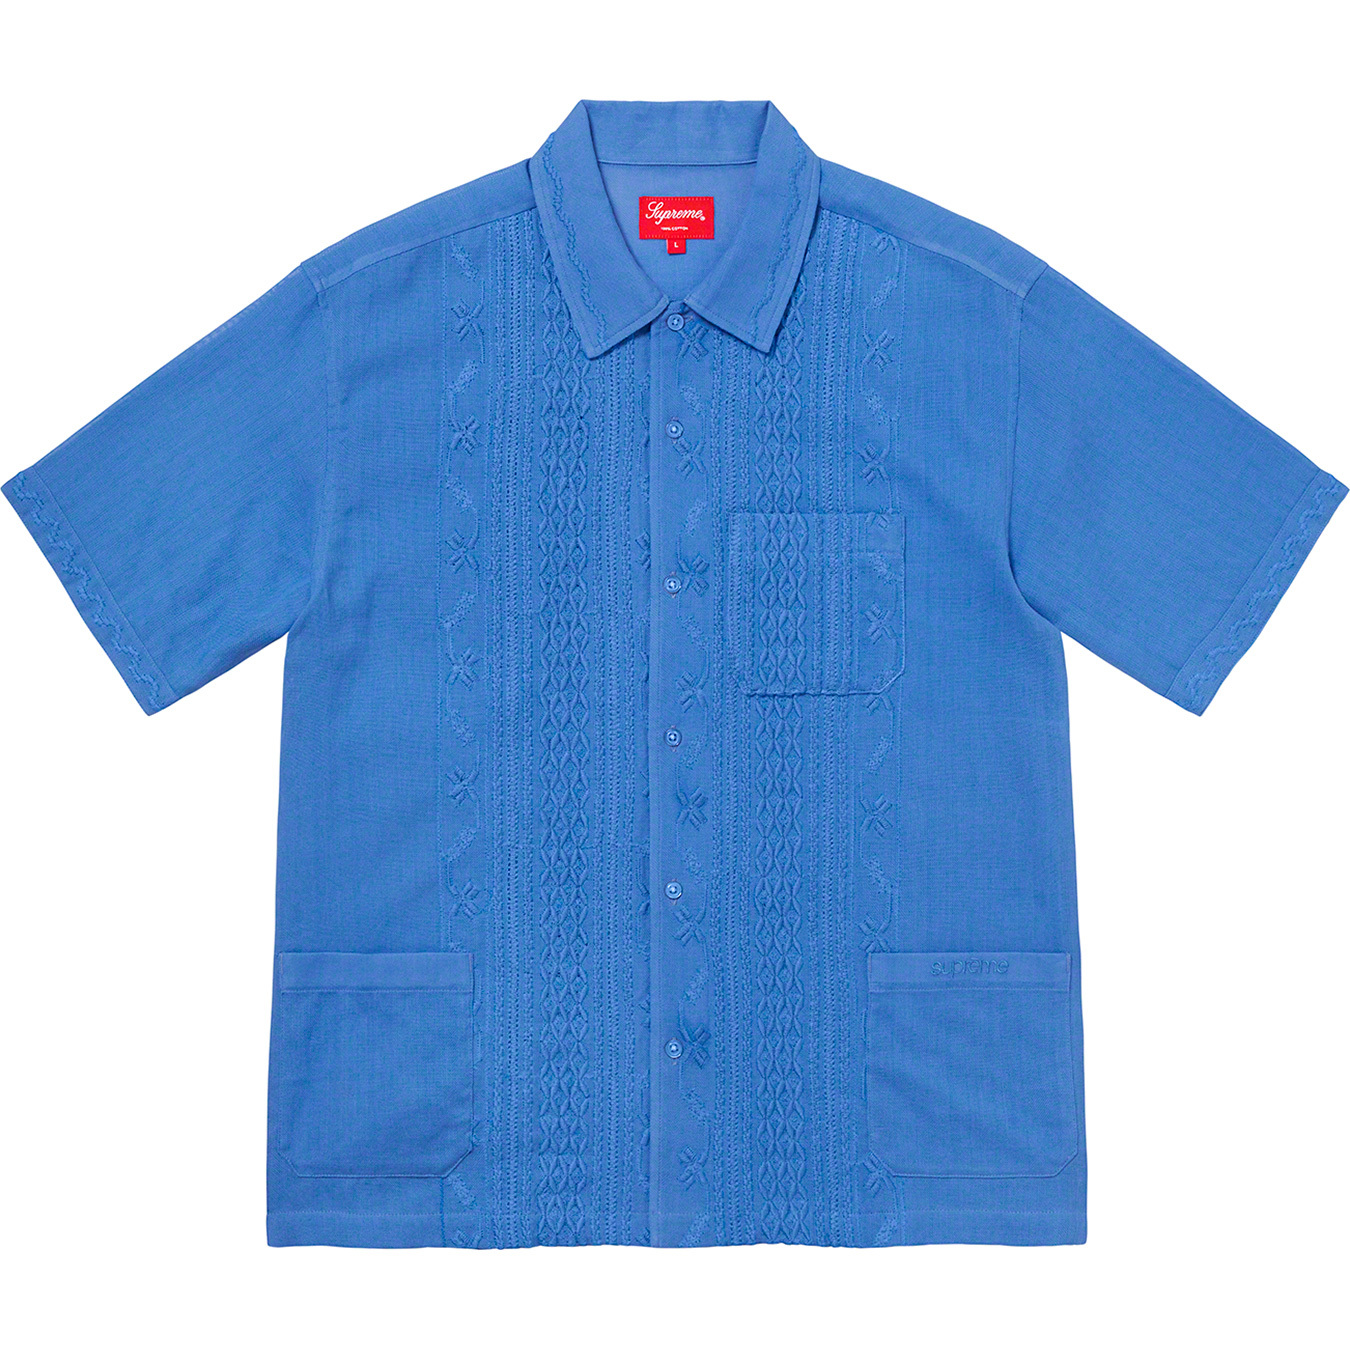 supreme-20ss-spring-summer-embroidered-s-s-shirt